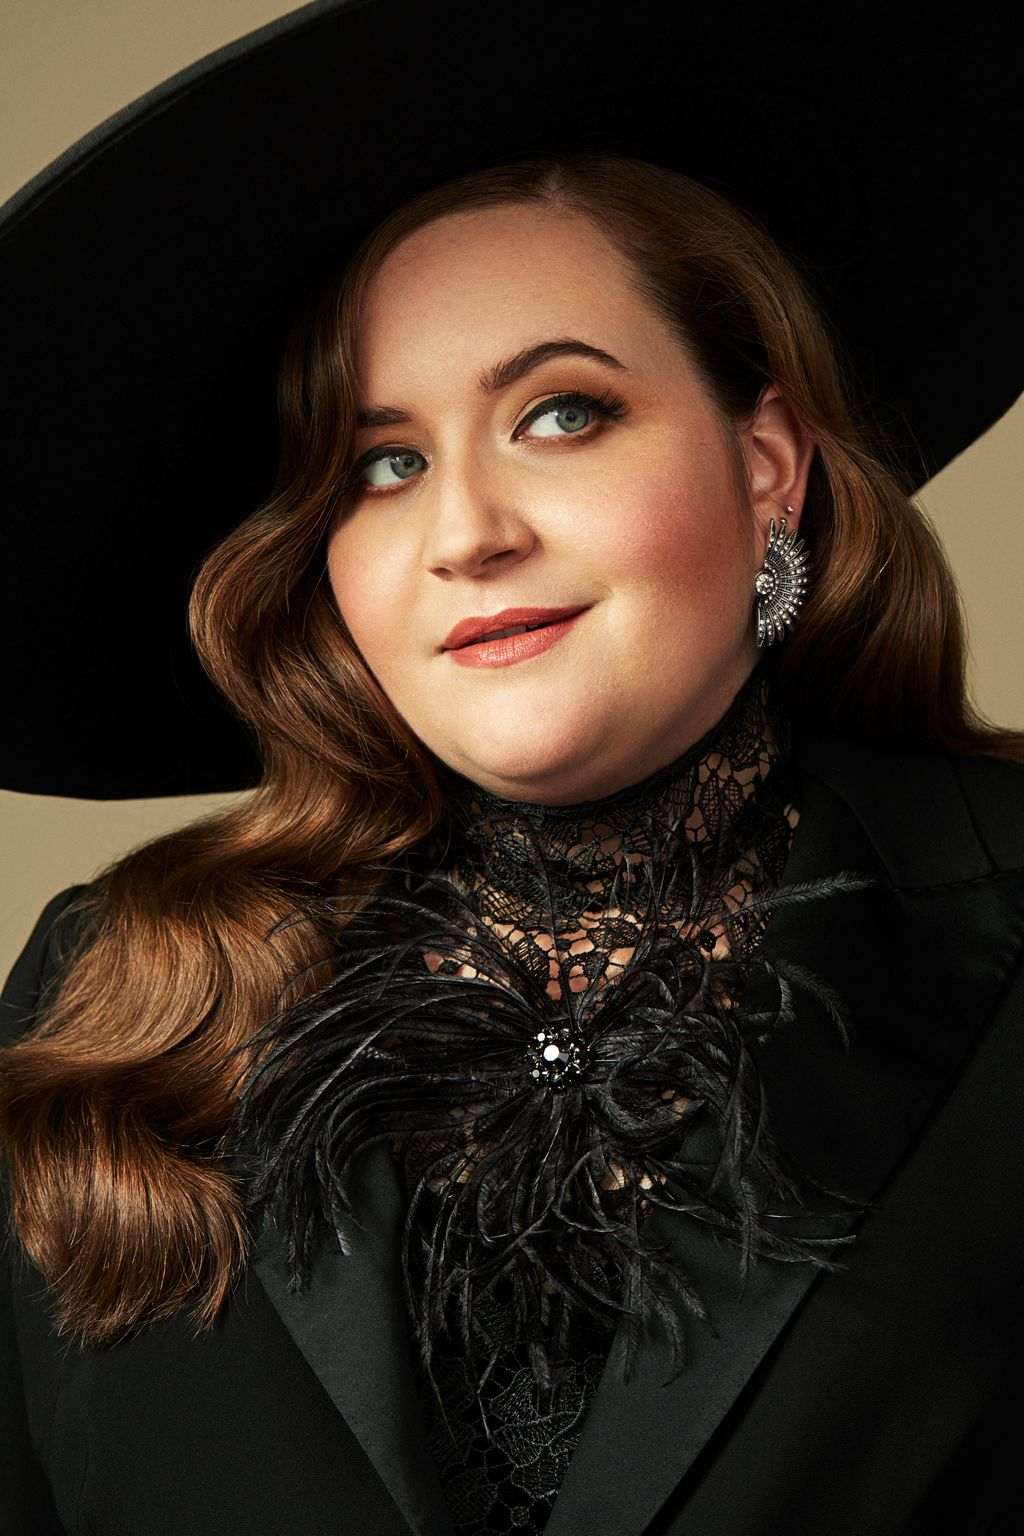 Aidy Bryant nudes (64 photos), Pussy, Is a cute, Boobs, braless 2019